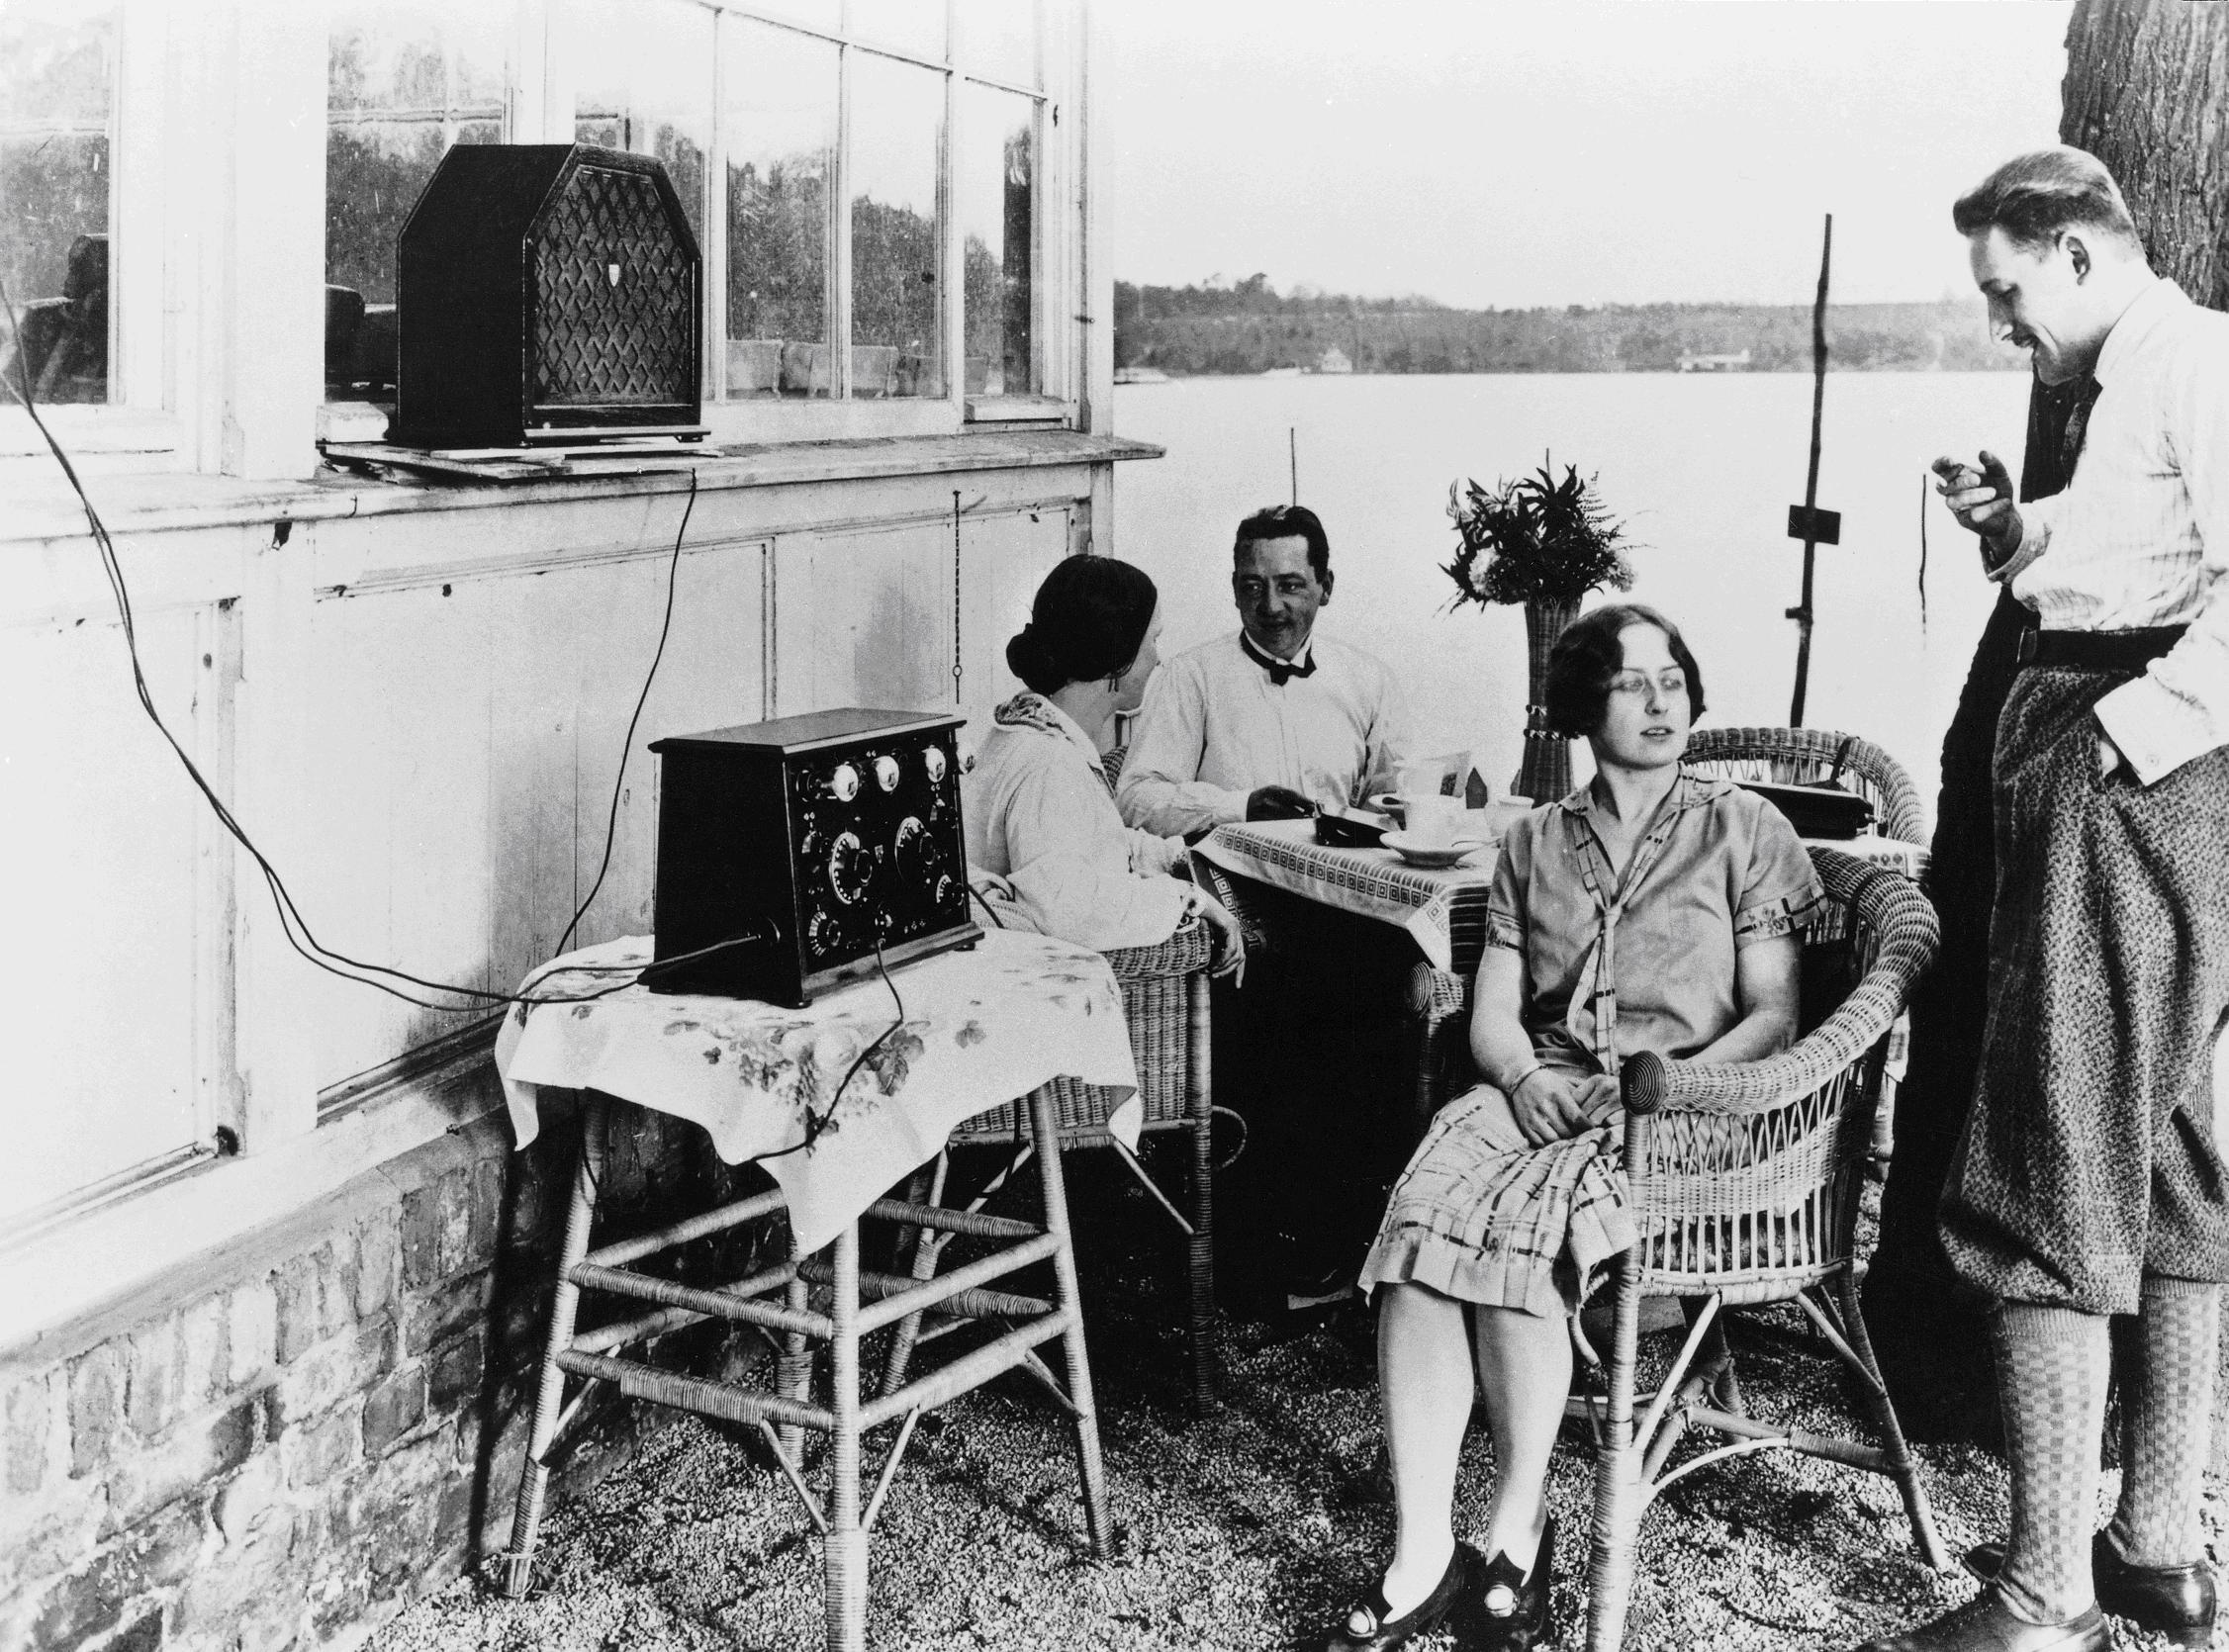 Radio at the water sports field Siemenswerder an der Havel, around 1928